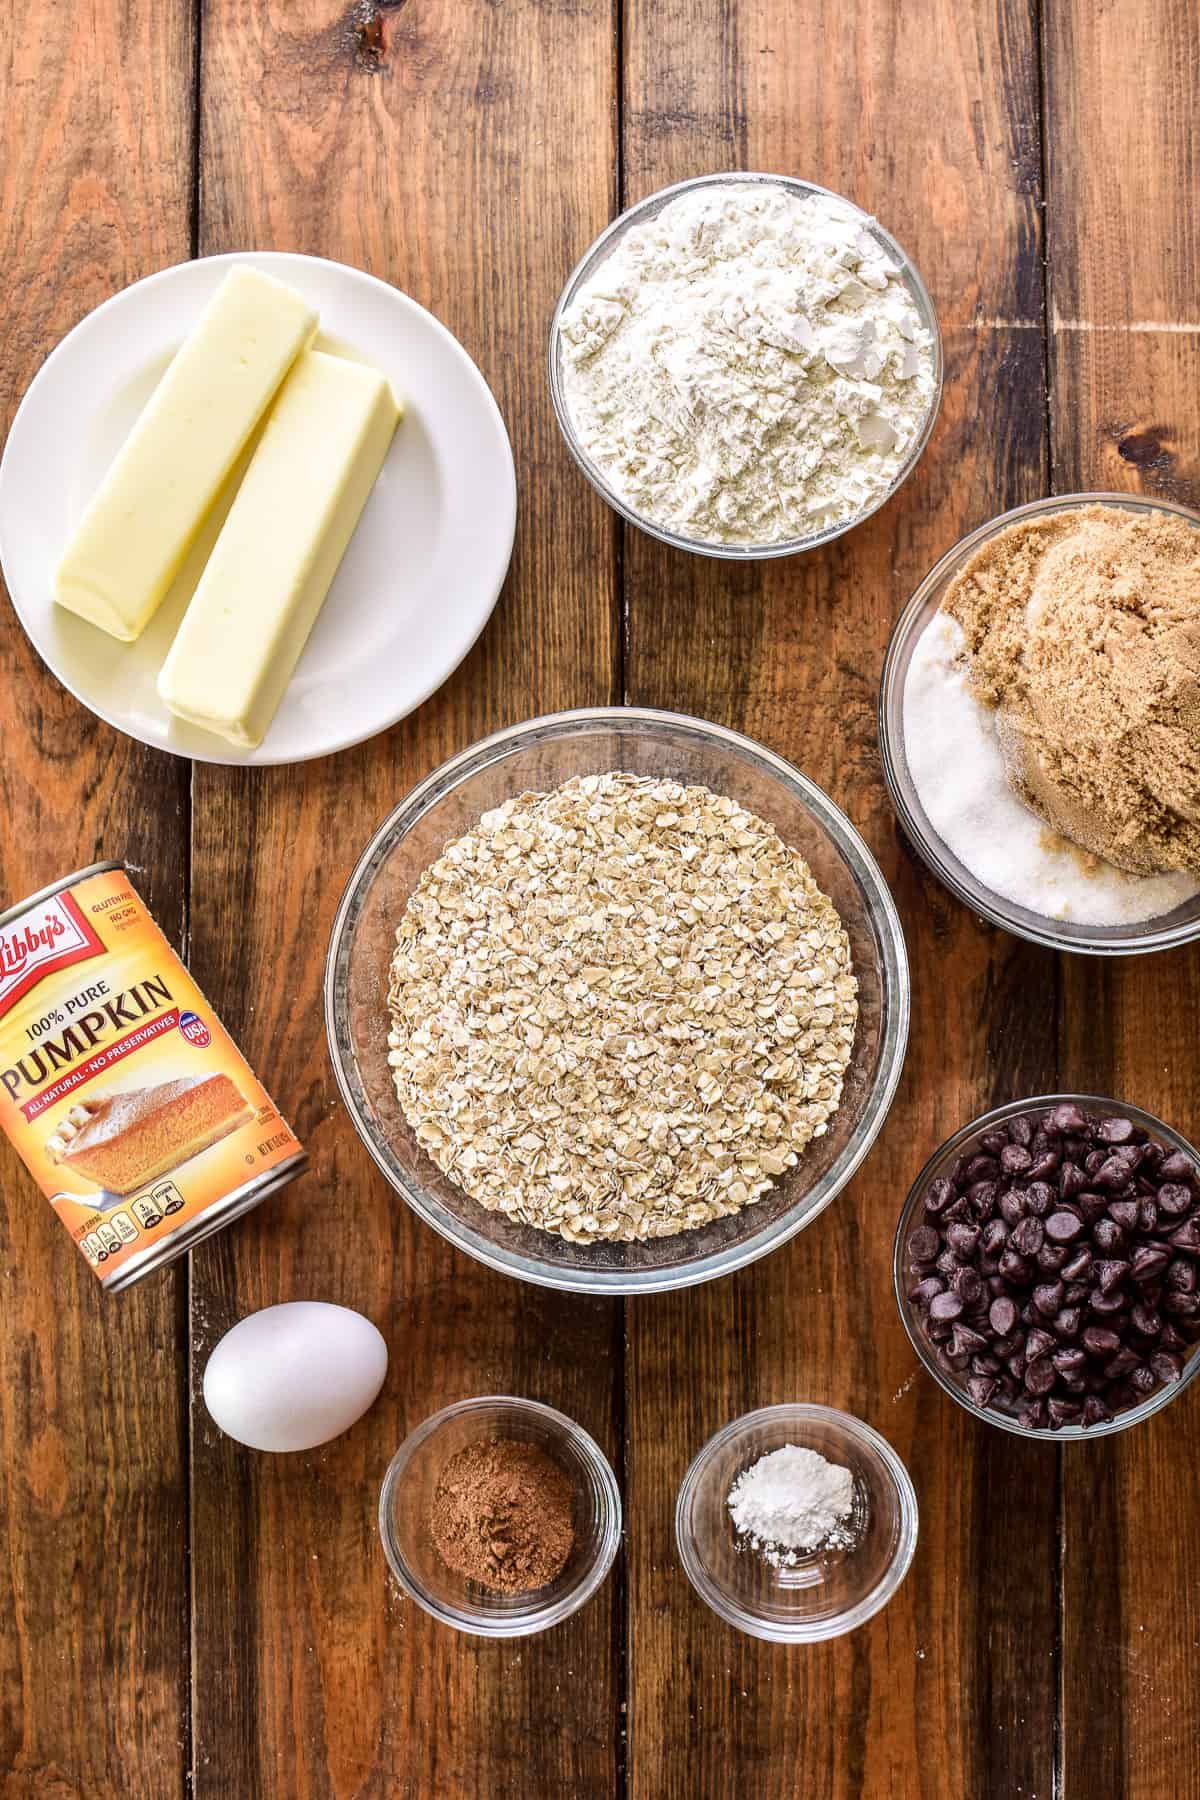 Pumpkin Oatmeal Chocolate Chip Cookie ingredients on a wooden board